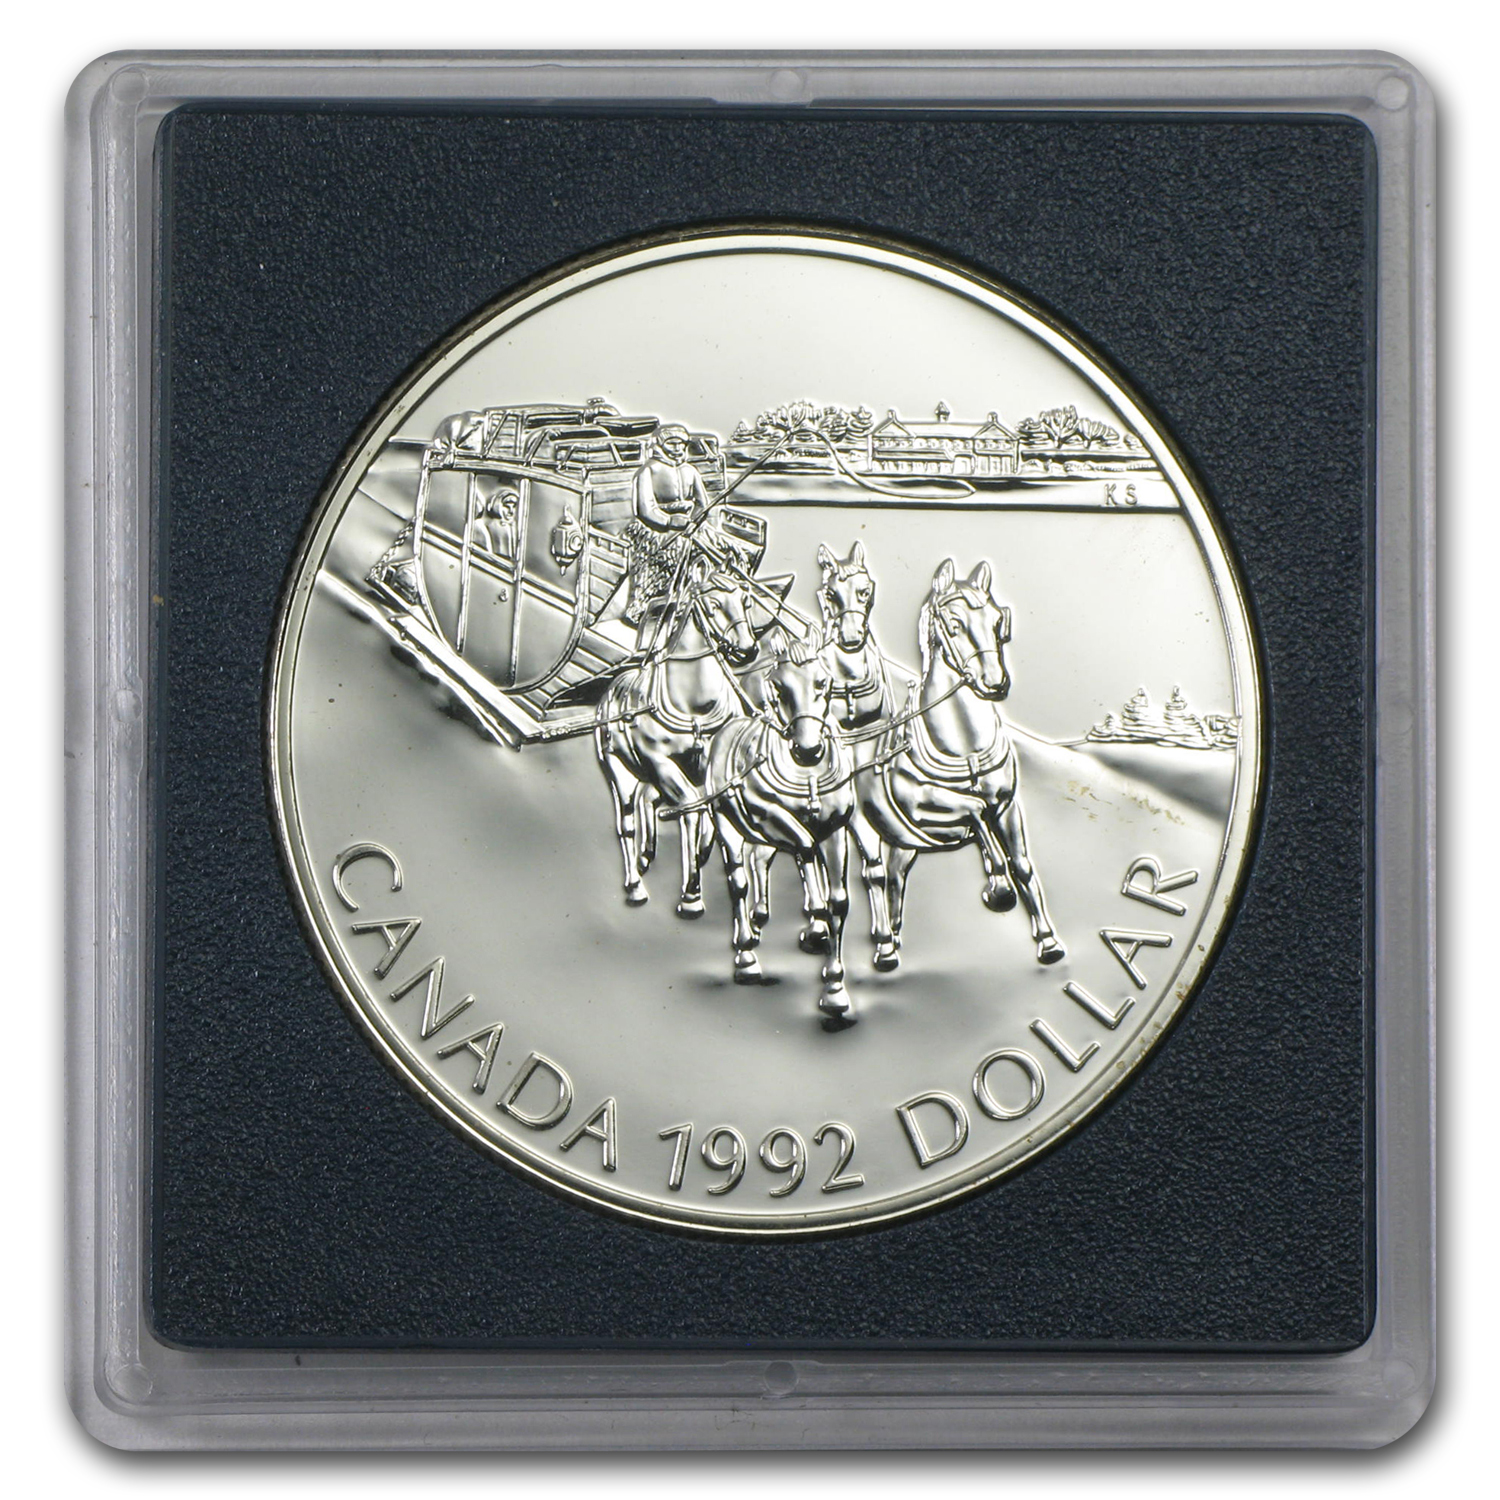 1992 Canadian BU Silver Dollar - Stagecoach Service Commemorative